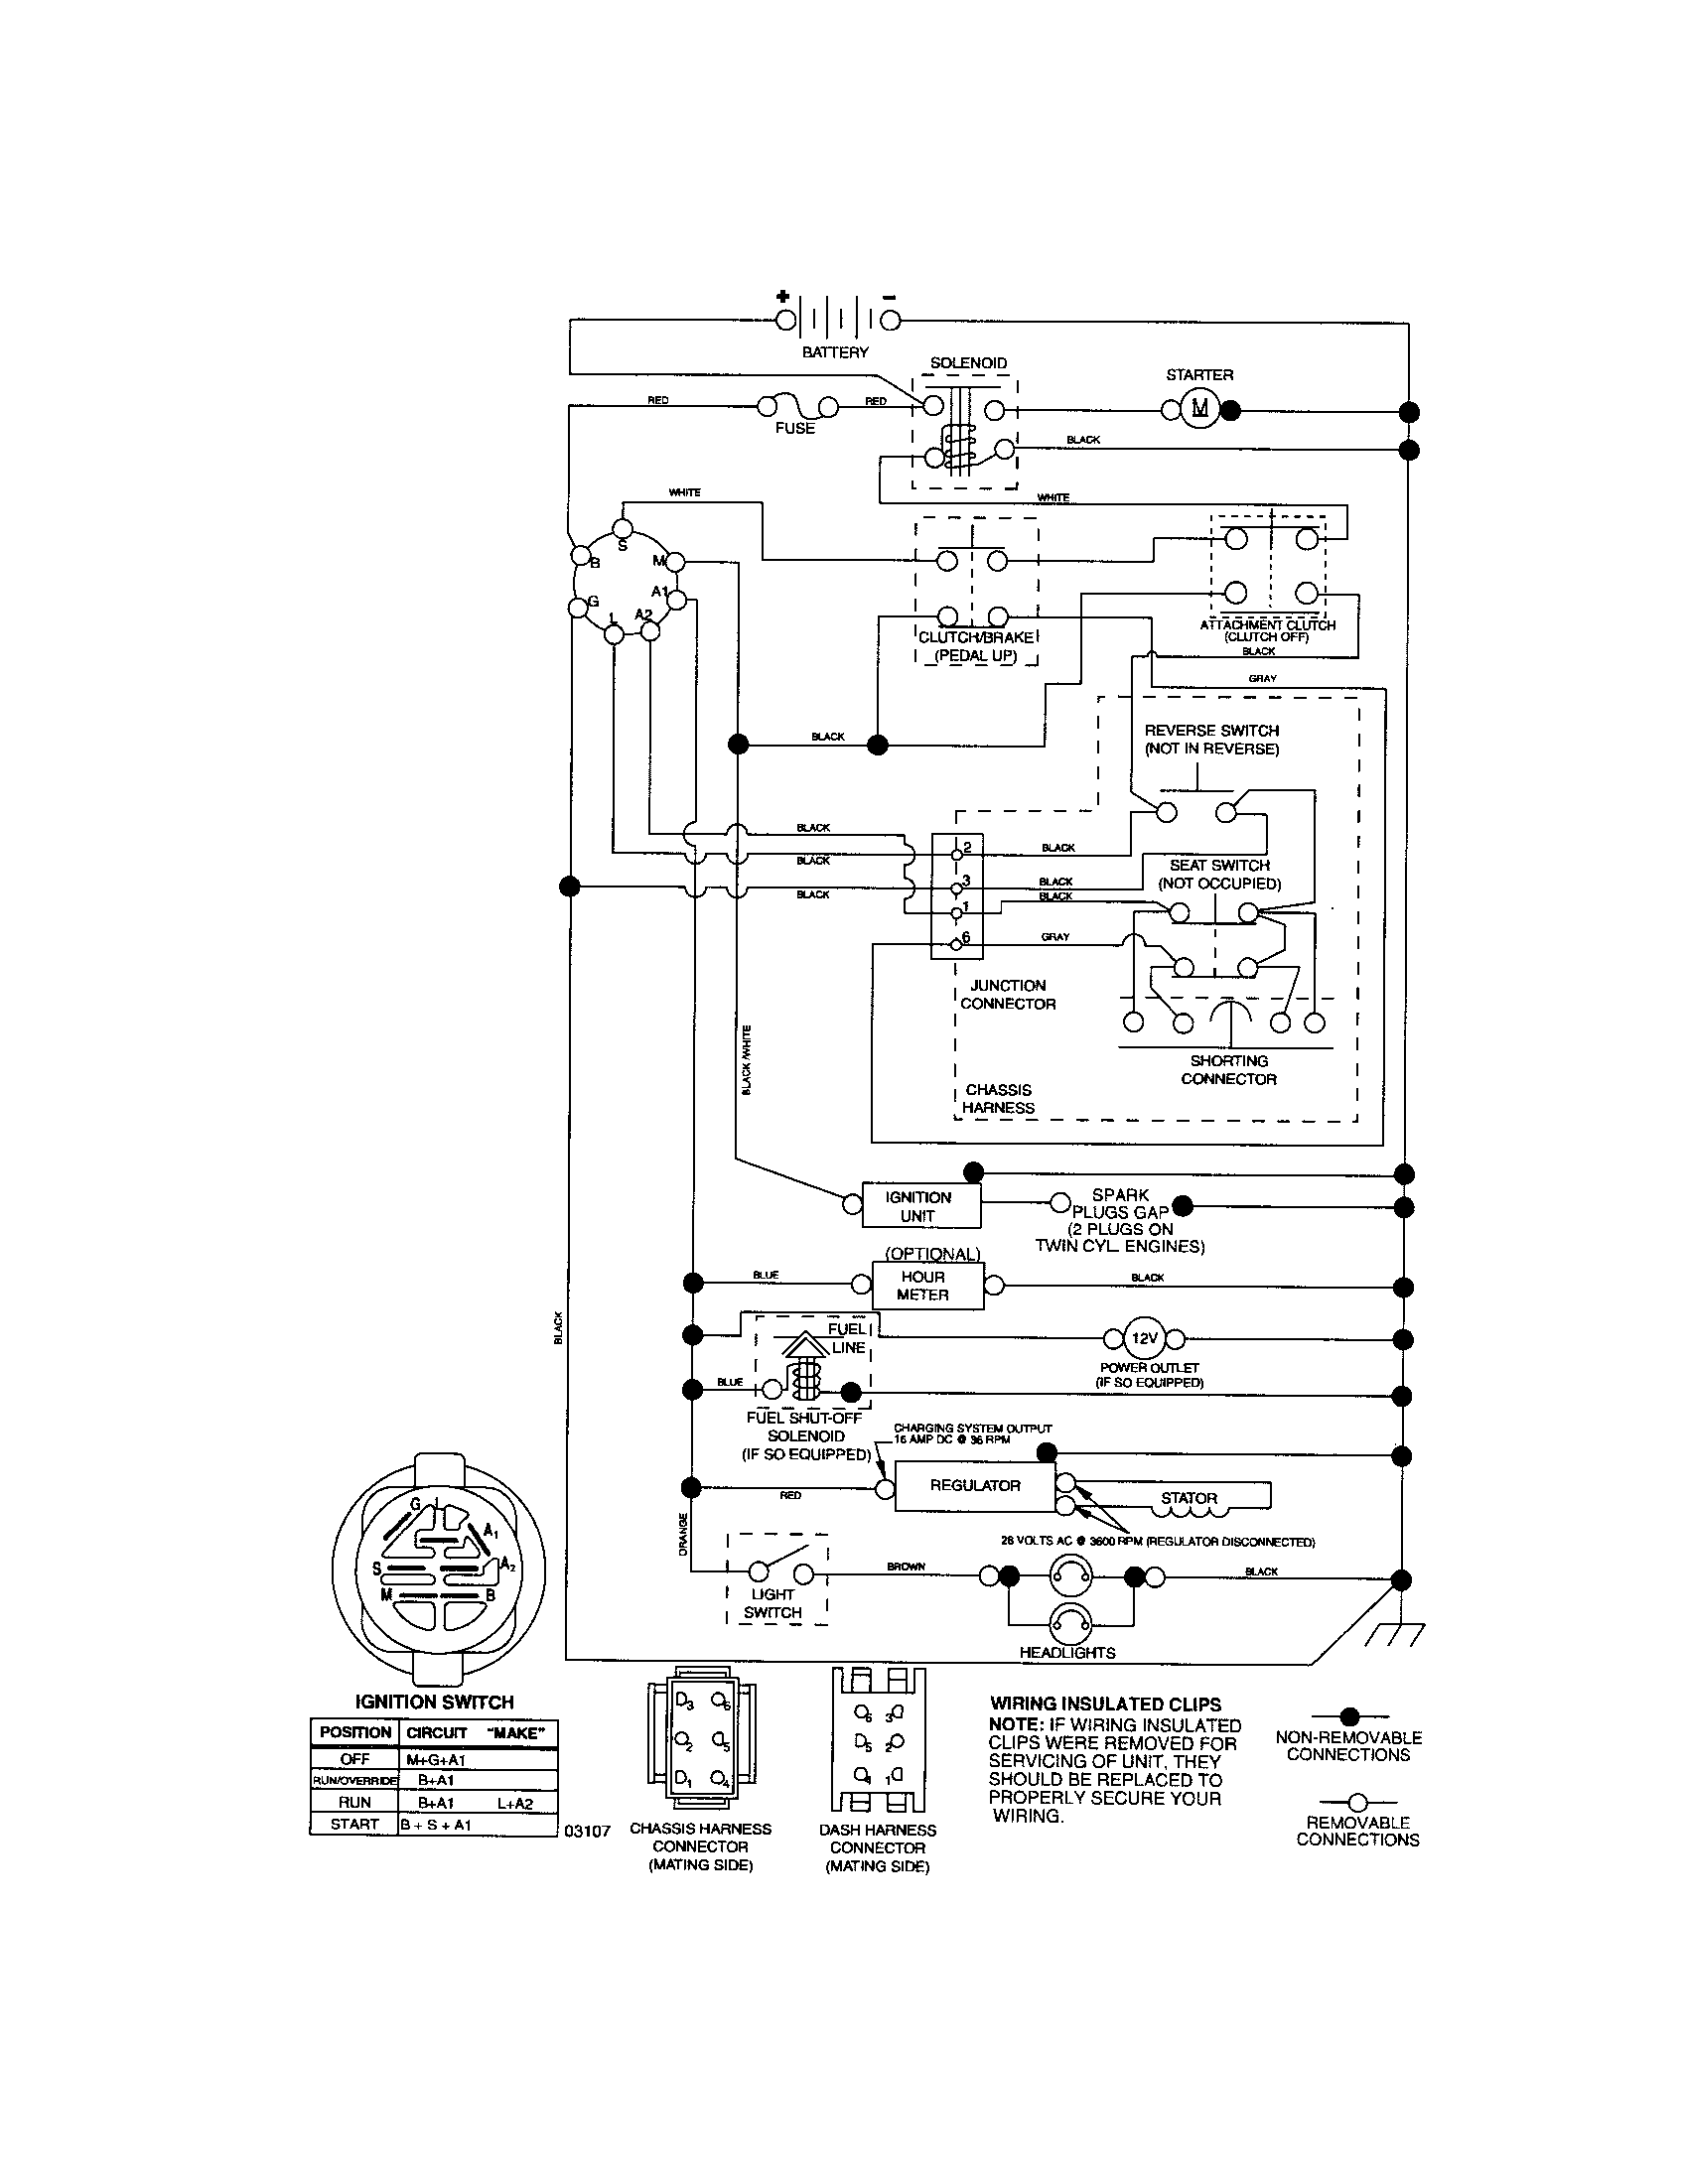 Poulan Riding Mower Wiring Diagram Free For You Wwwelectric Circuit Diagramcom Trusted Rh 16 17 3 Gartenmoebel Rupp De